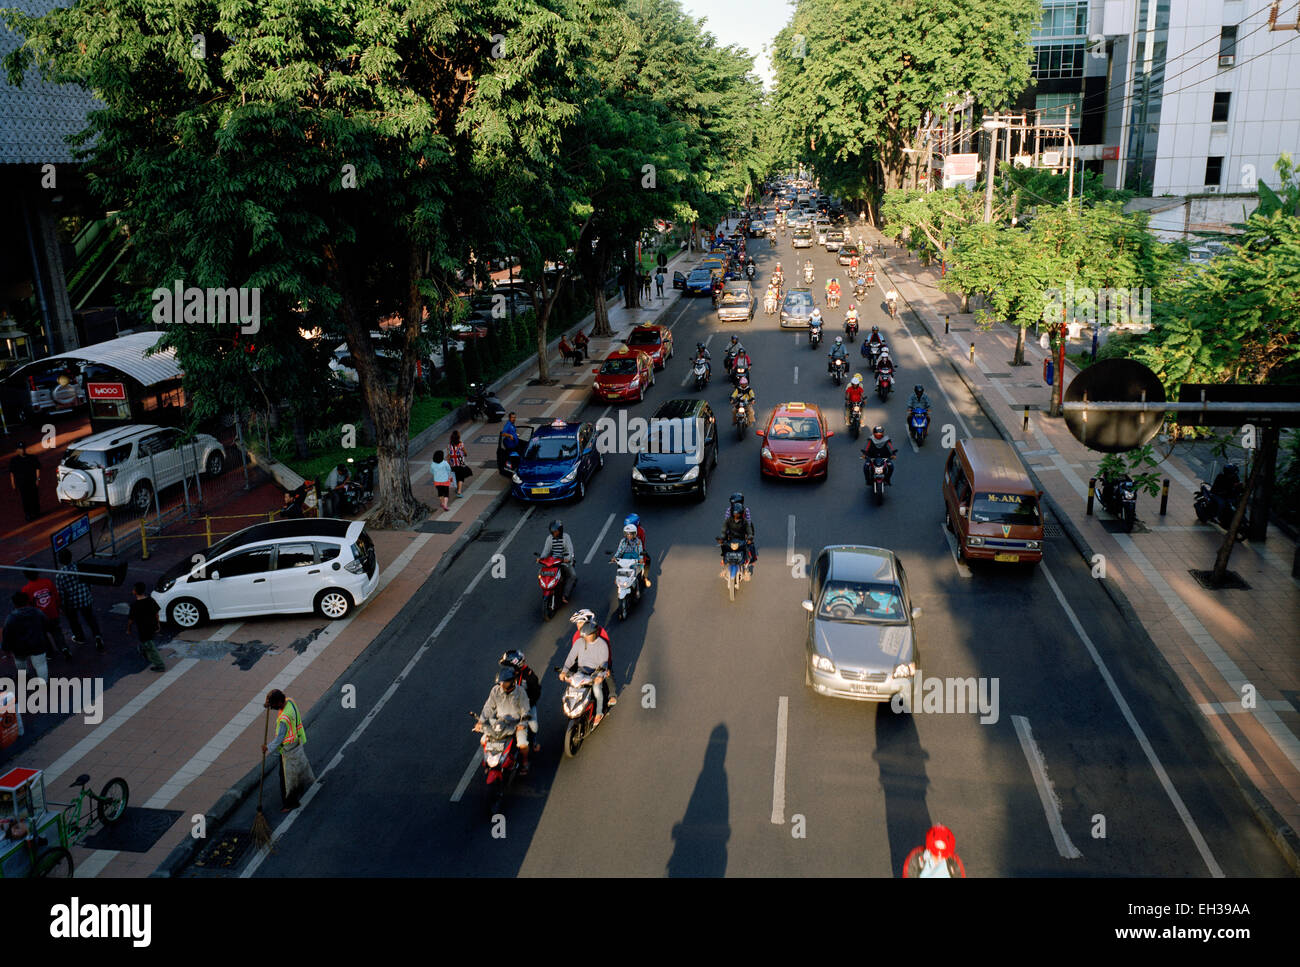 Photos of everyday life in Indonesia 40